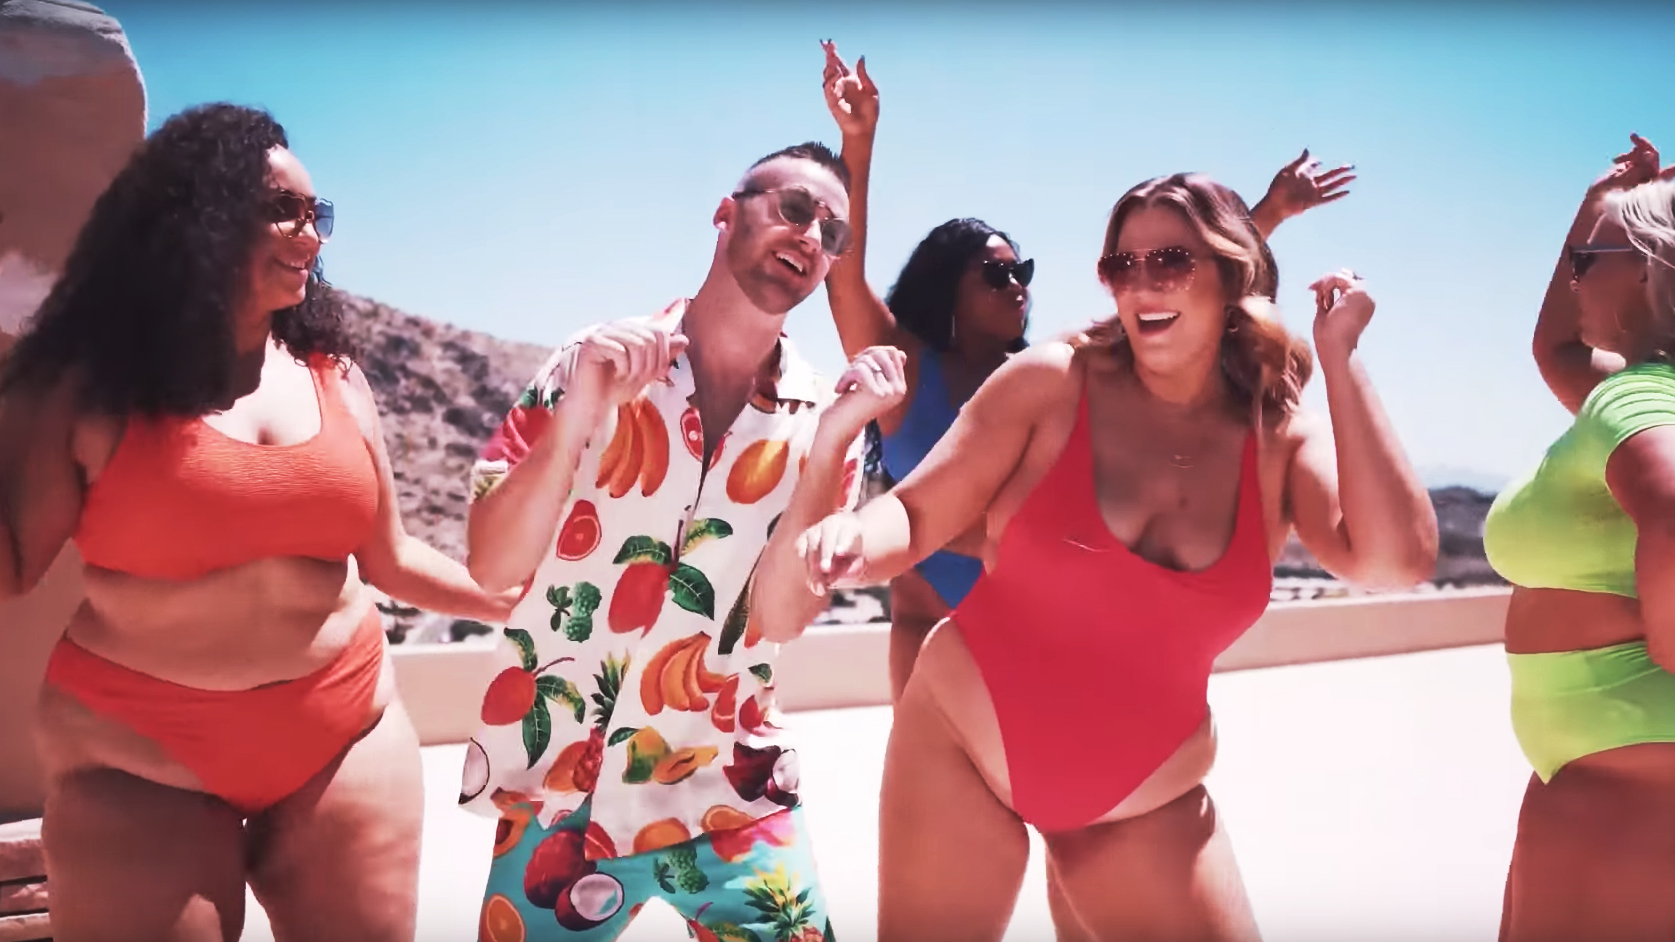 Curvy Wife Guy Robbie Tripp Is Being Slammed for His New Music Video 'Chubby Sexy'